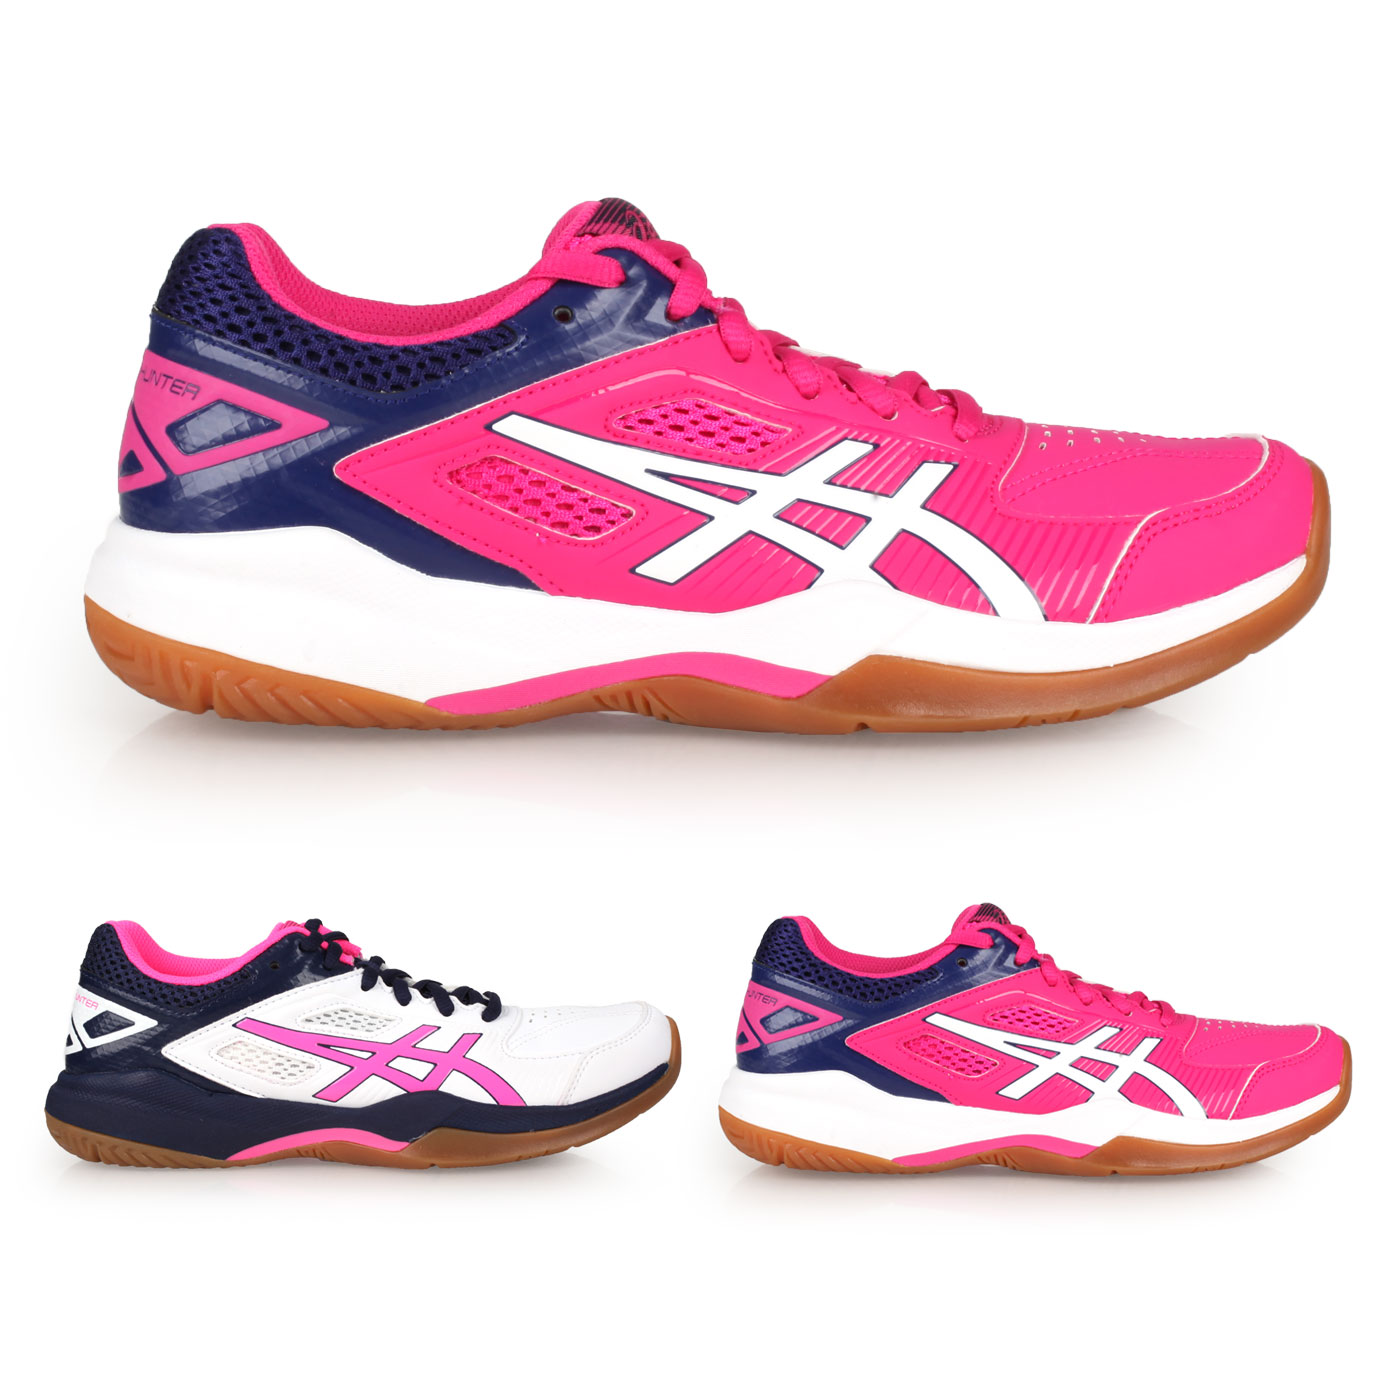 ASICS 女款羽球鞋-2E  @GEL-COURT HUNTER@1072A015-118